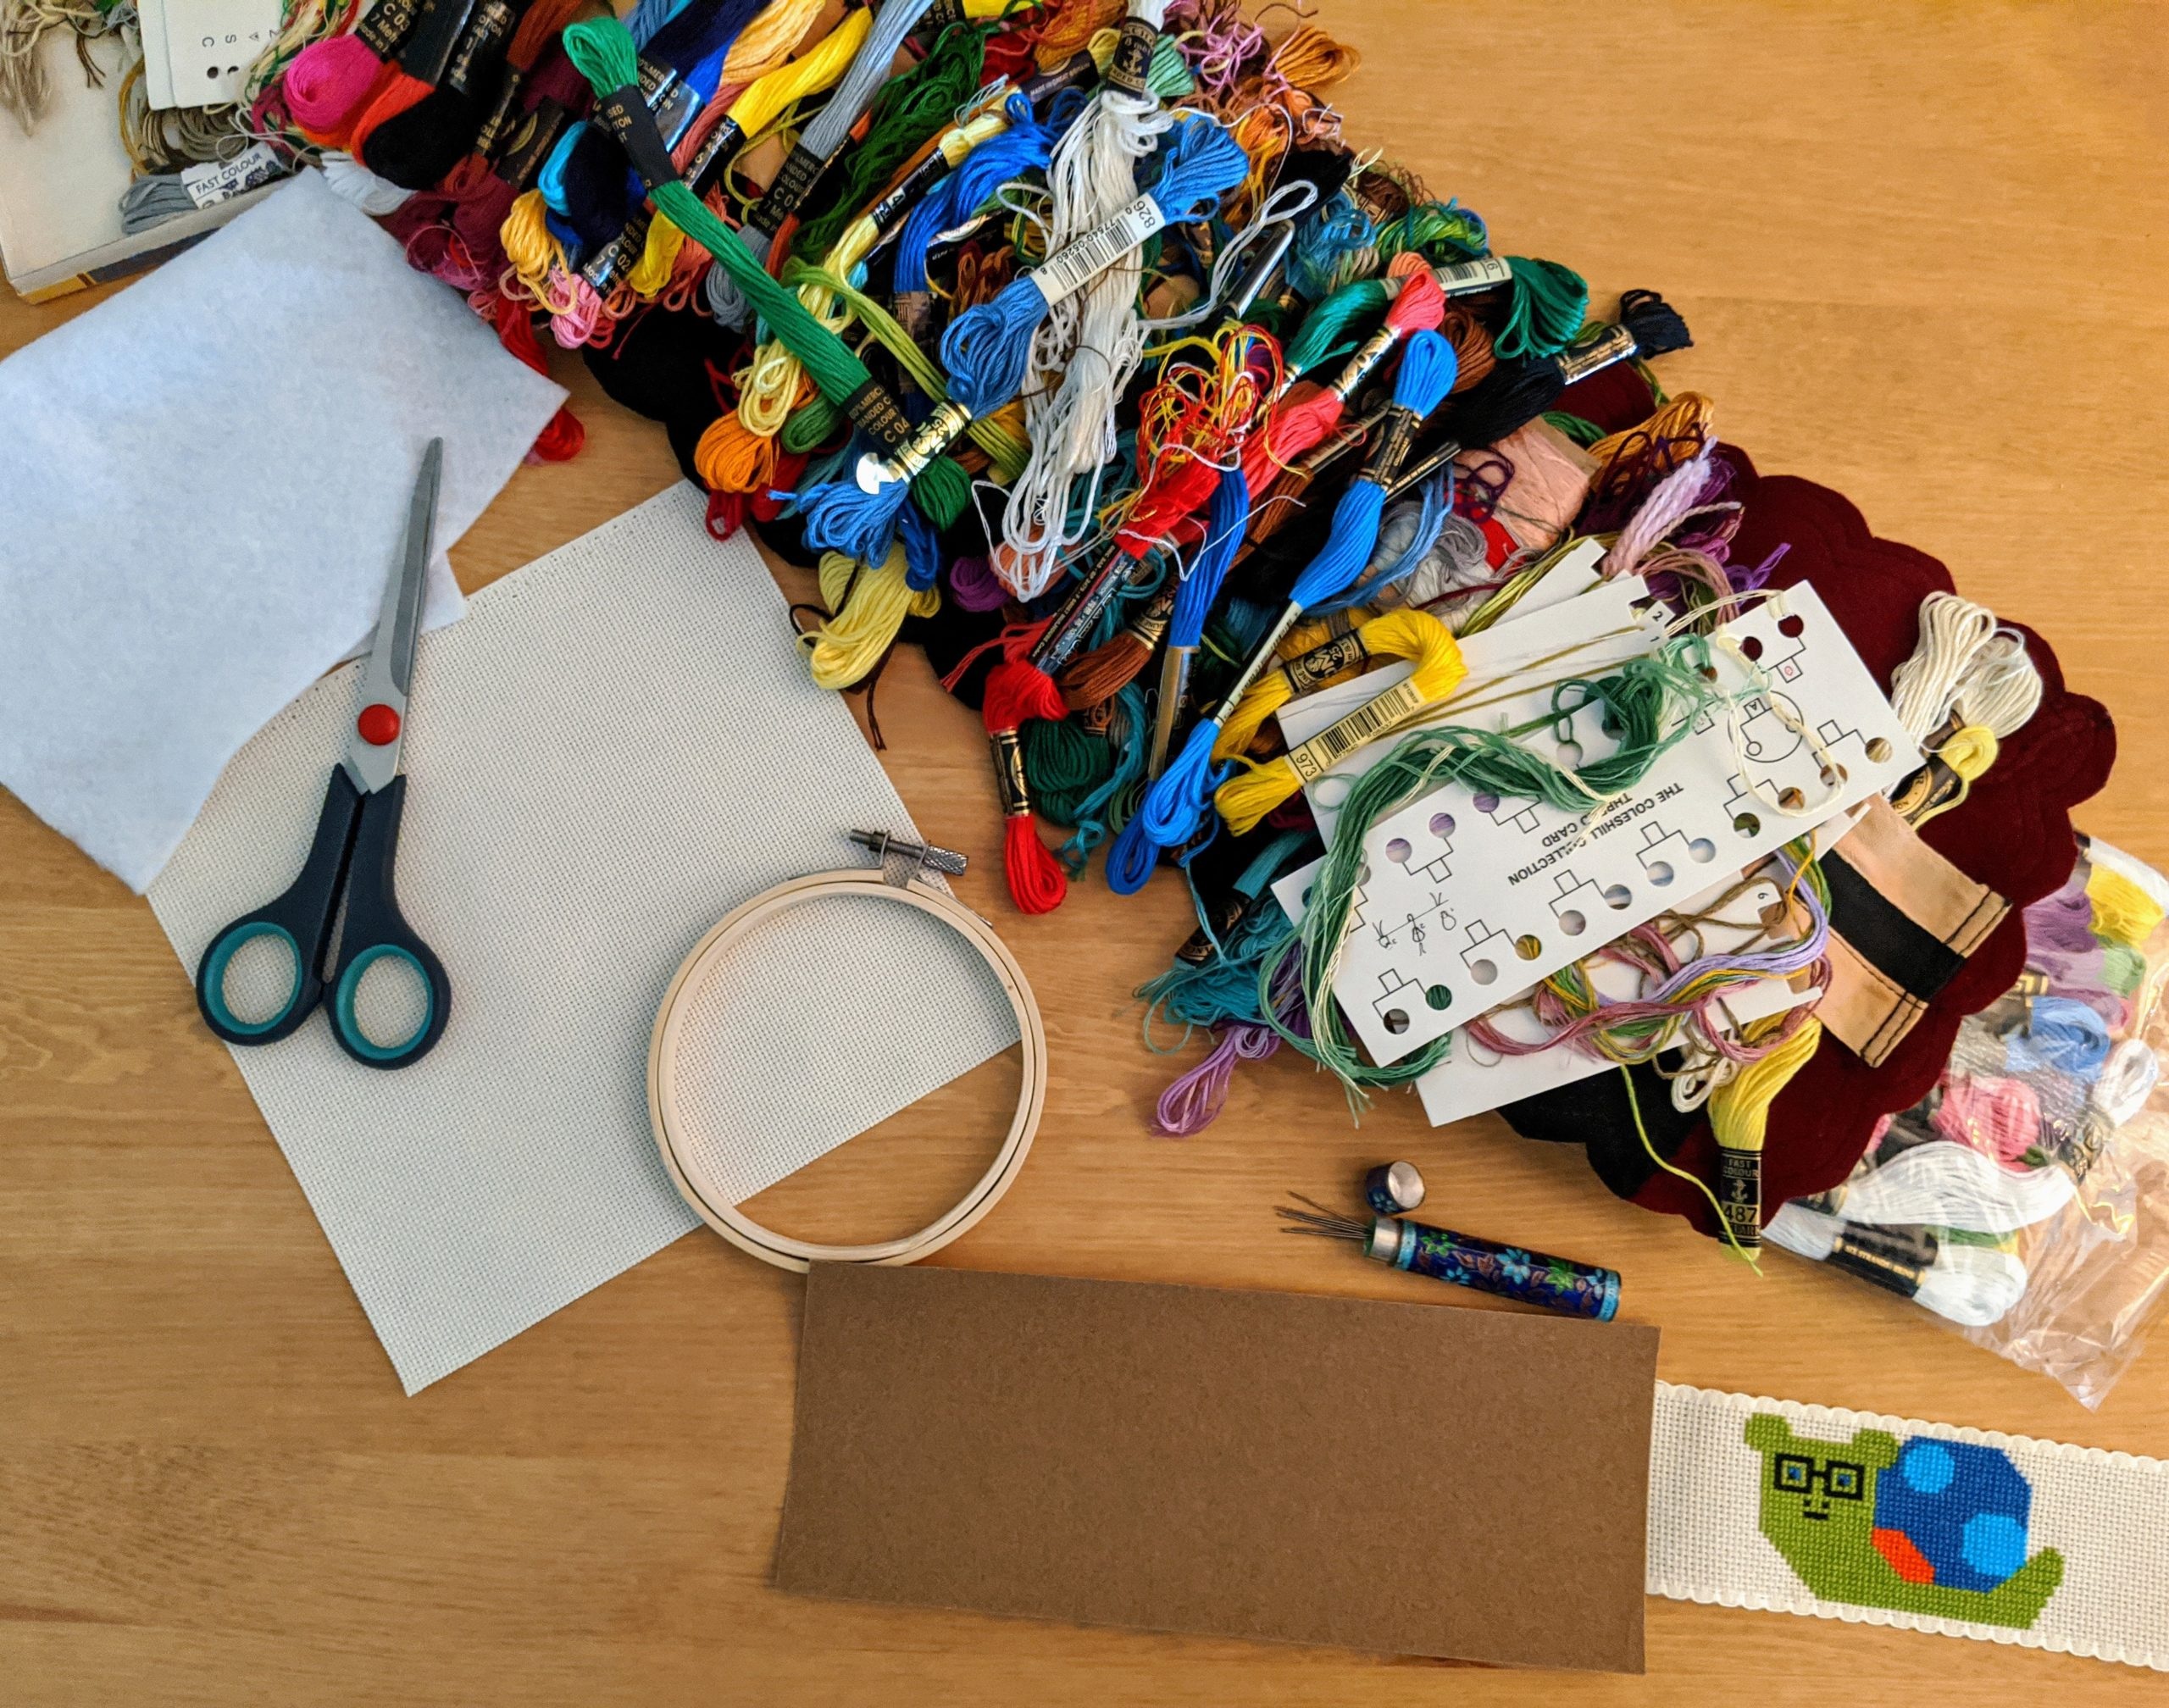 materials for cross-stitch